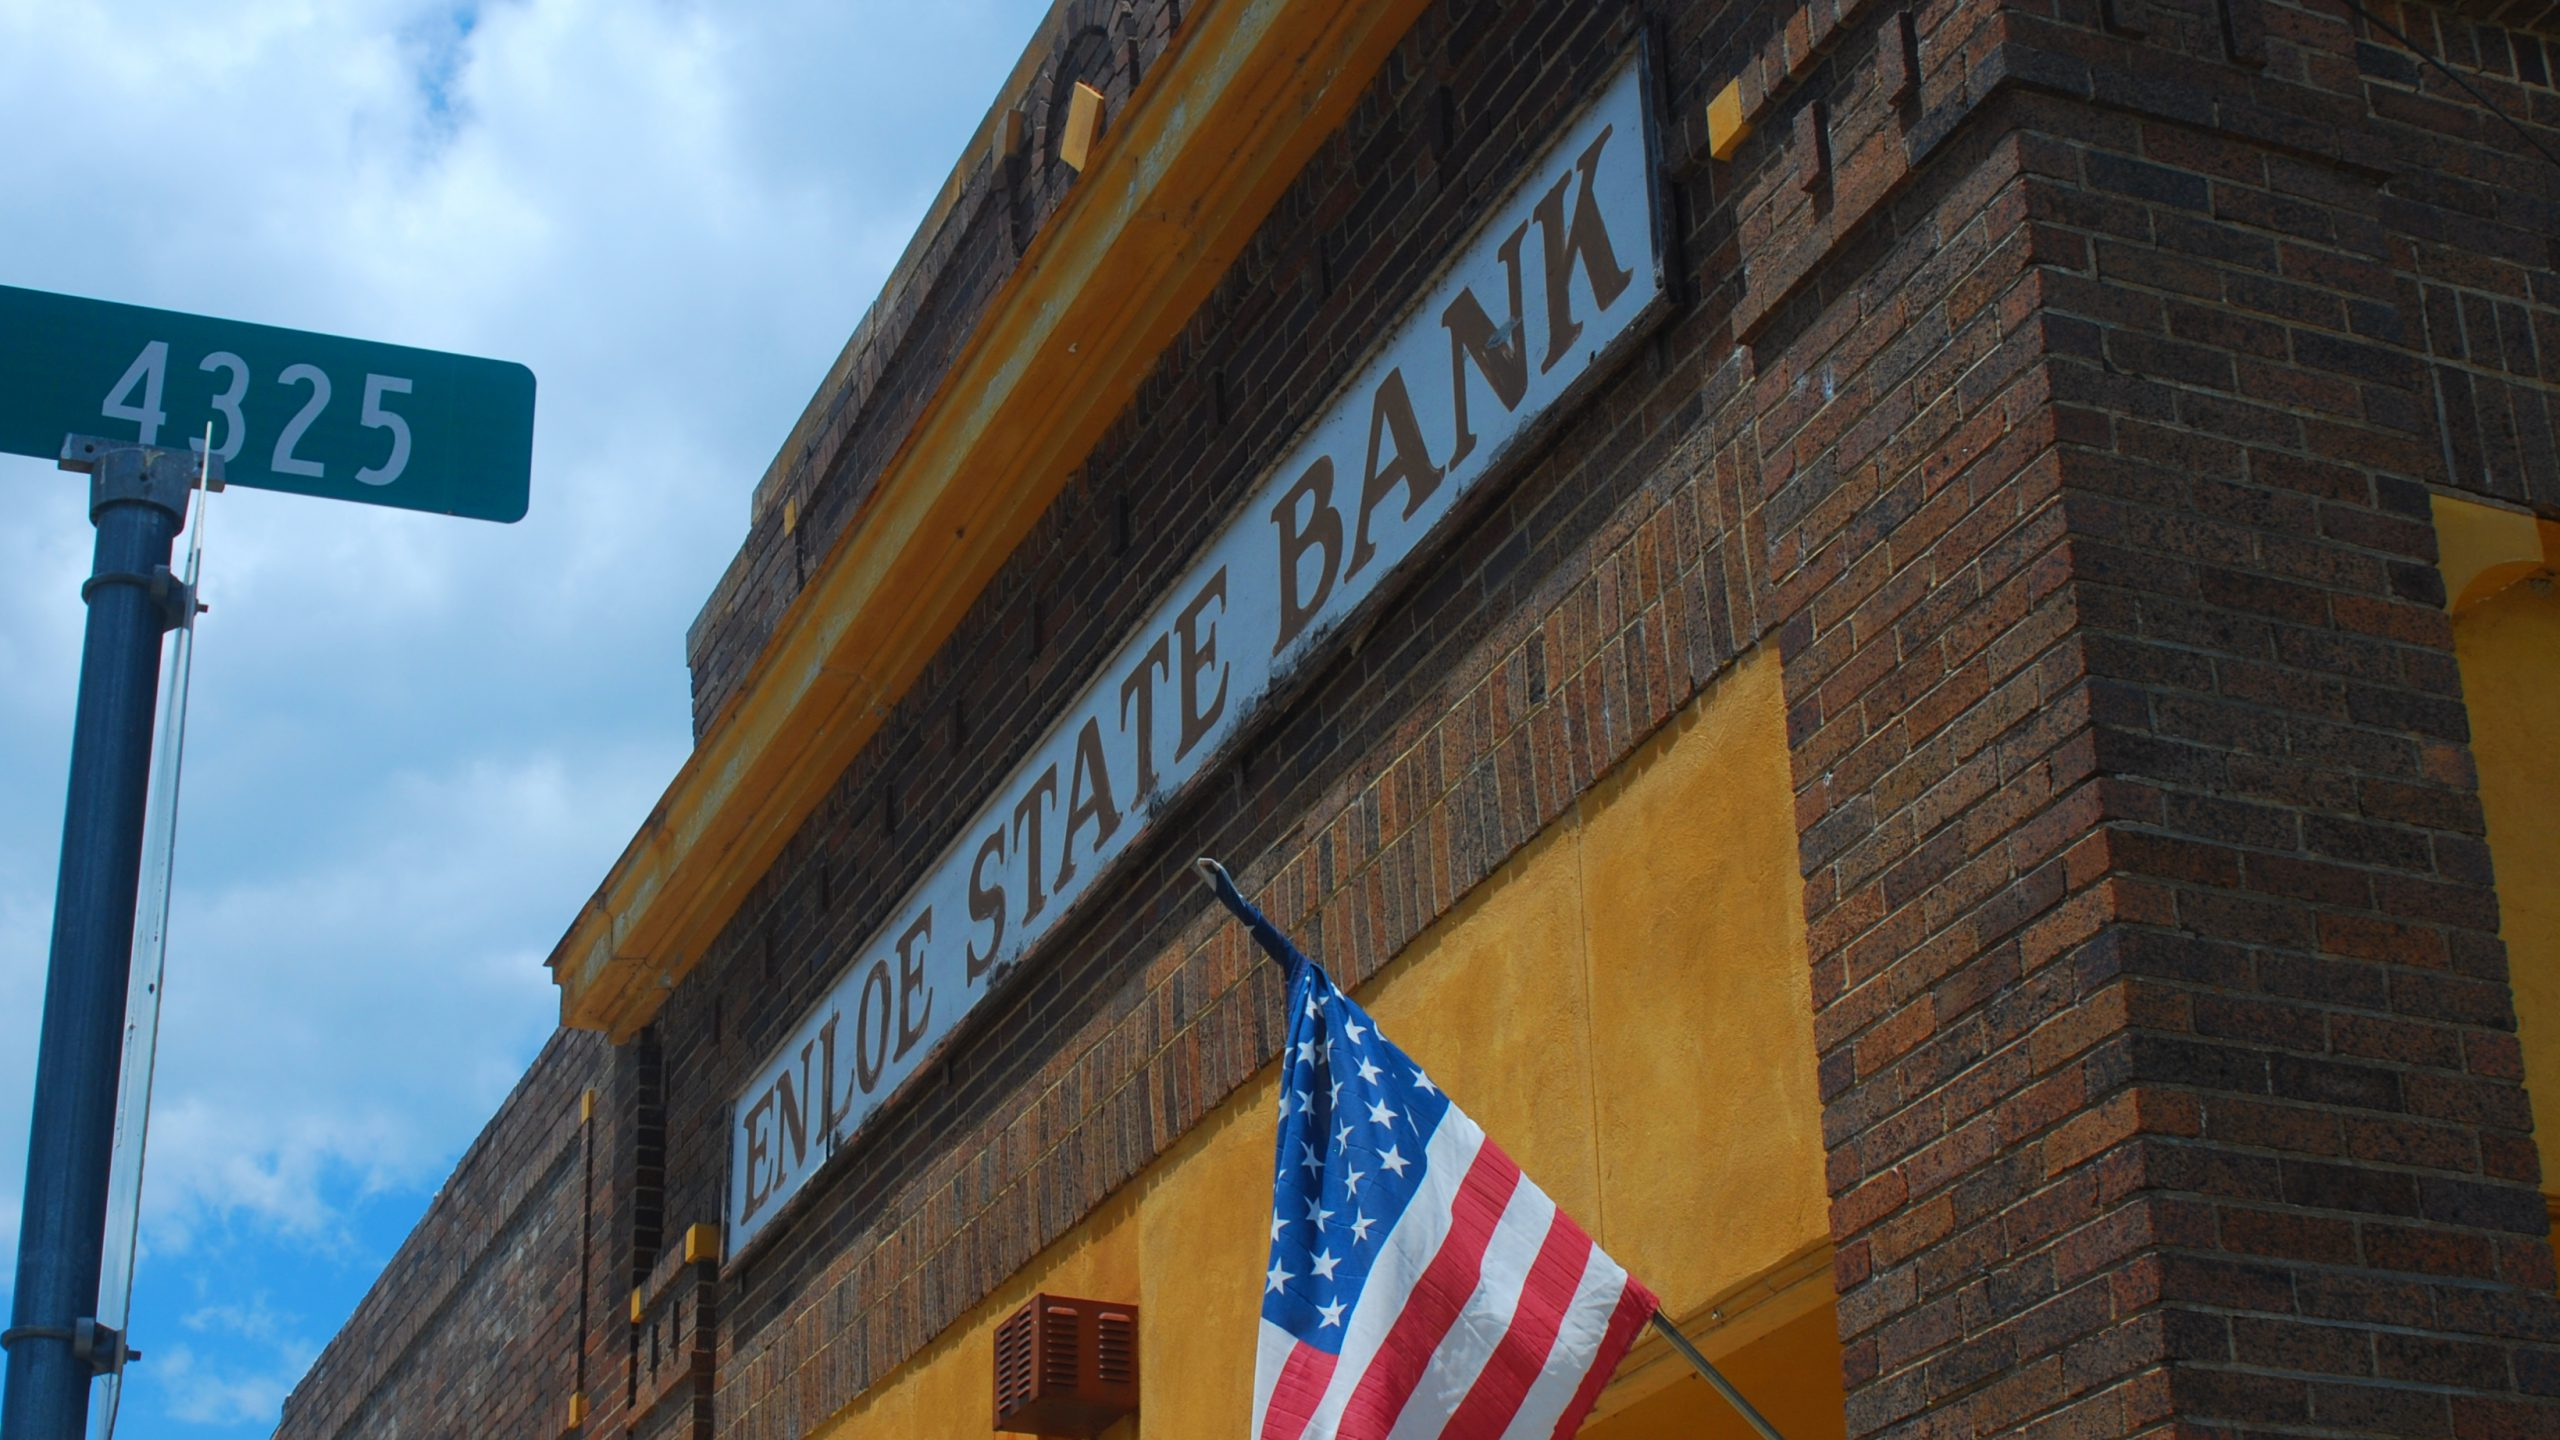 bank building with old sign